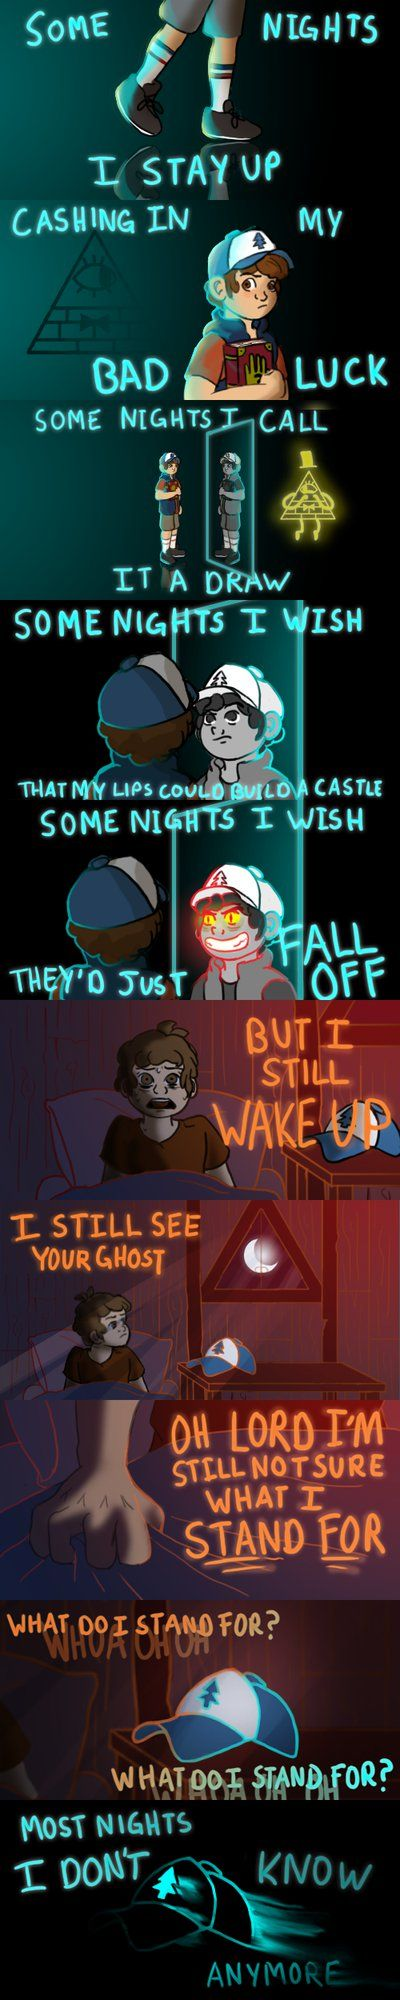 Gravity Falls: Some Nights by Charlemage on DeviantArt